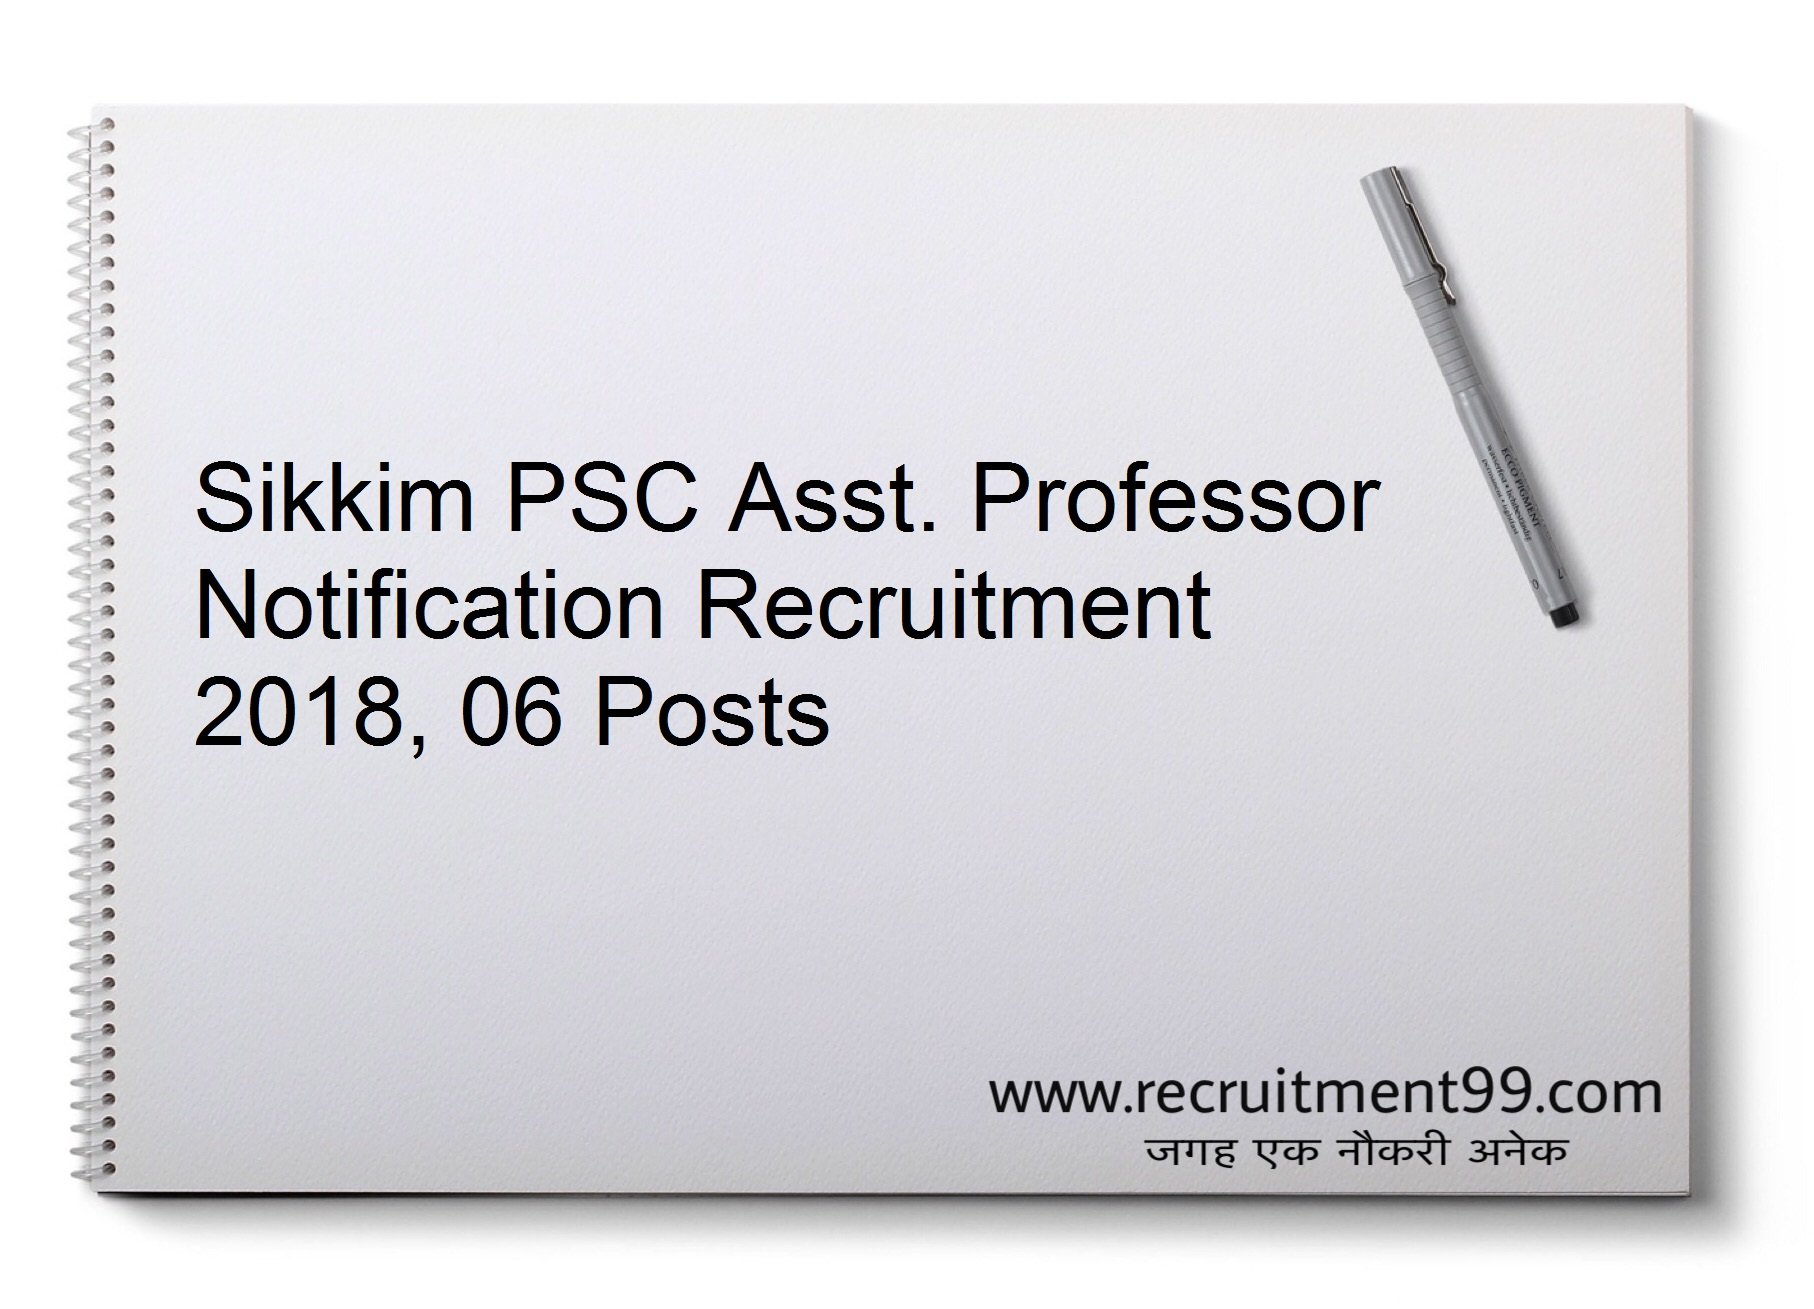 Sikkim PSC Assistant Professor Recruitment, Admit Card & Result 2018